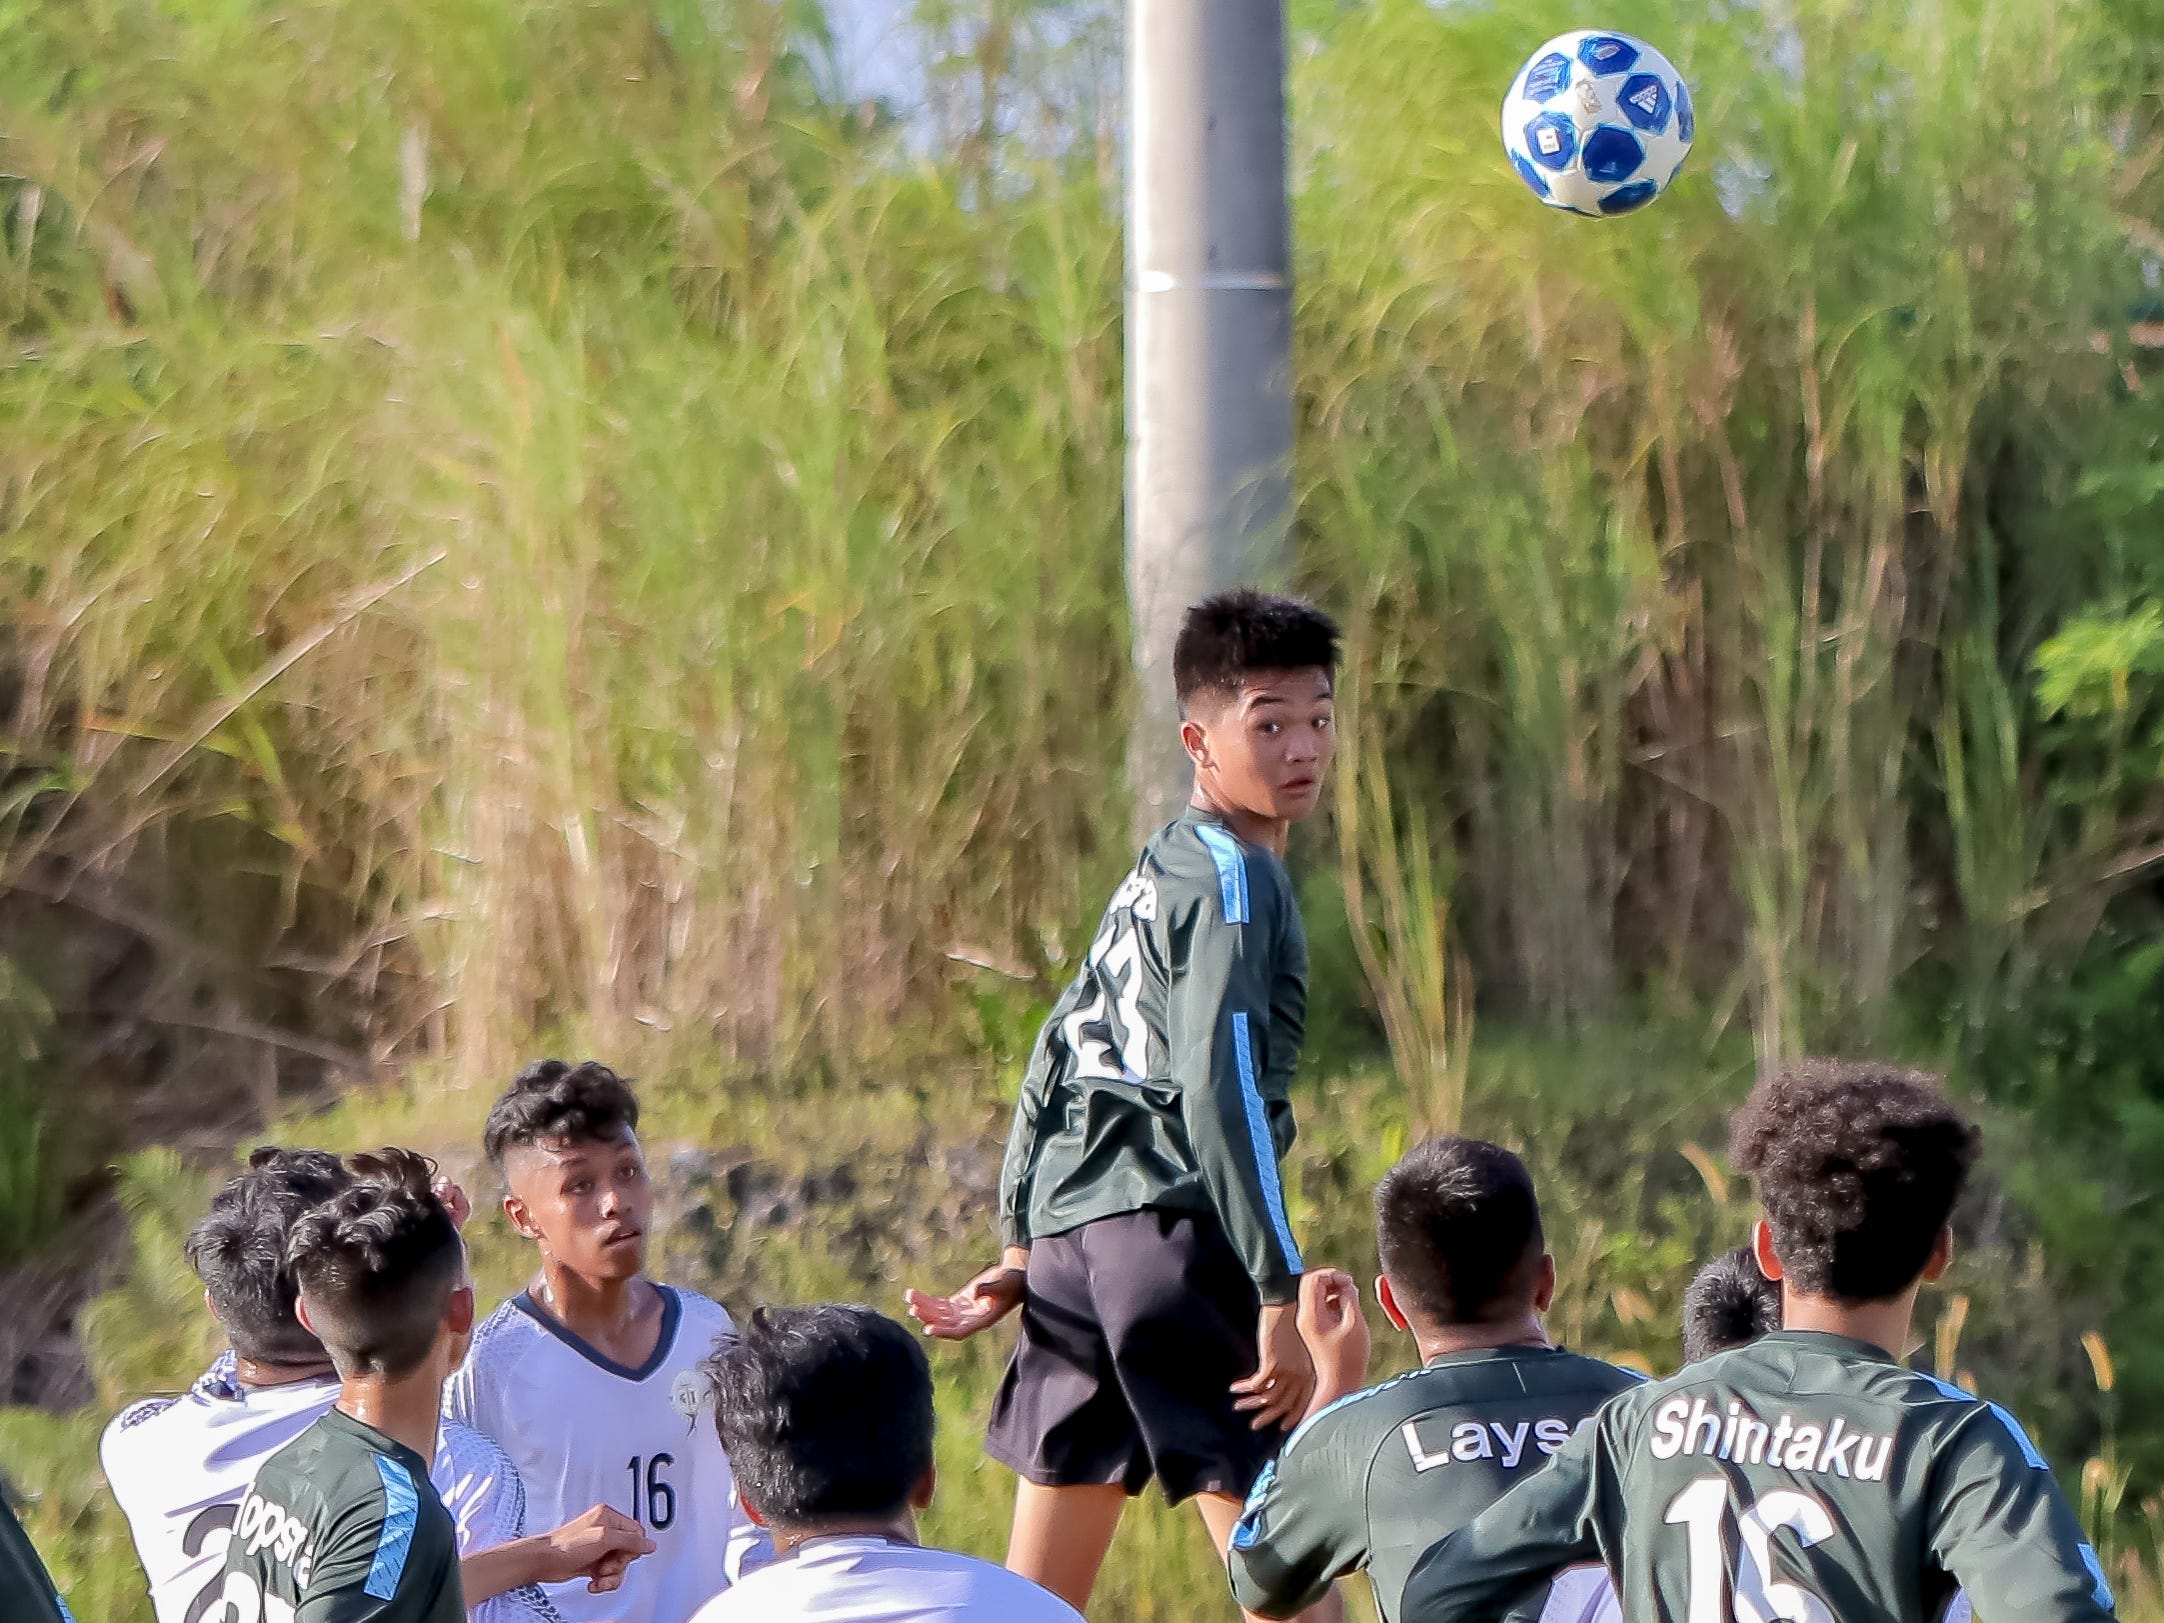 Soccer action between Tiyan High School and Southern High School during Independent Interscholastic Athletic Association of Guam game held at Tiyan Field on Nov. 15.